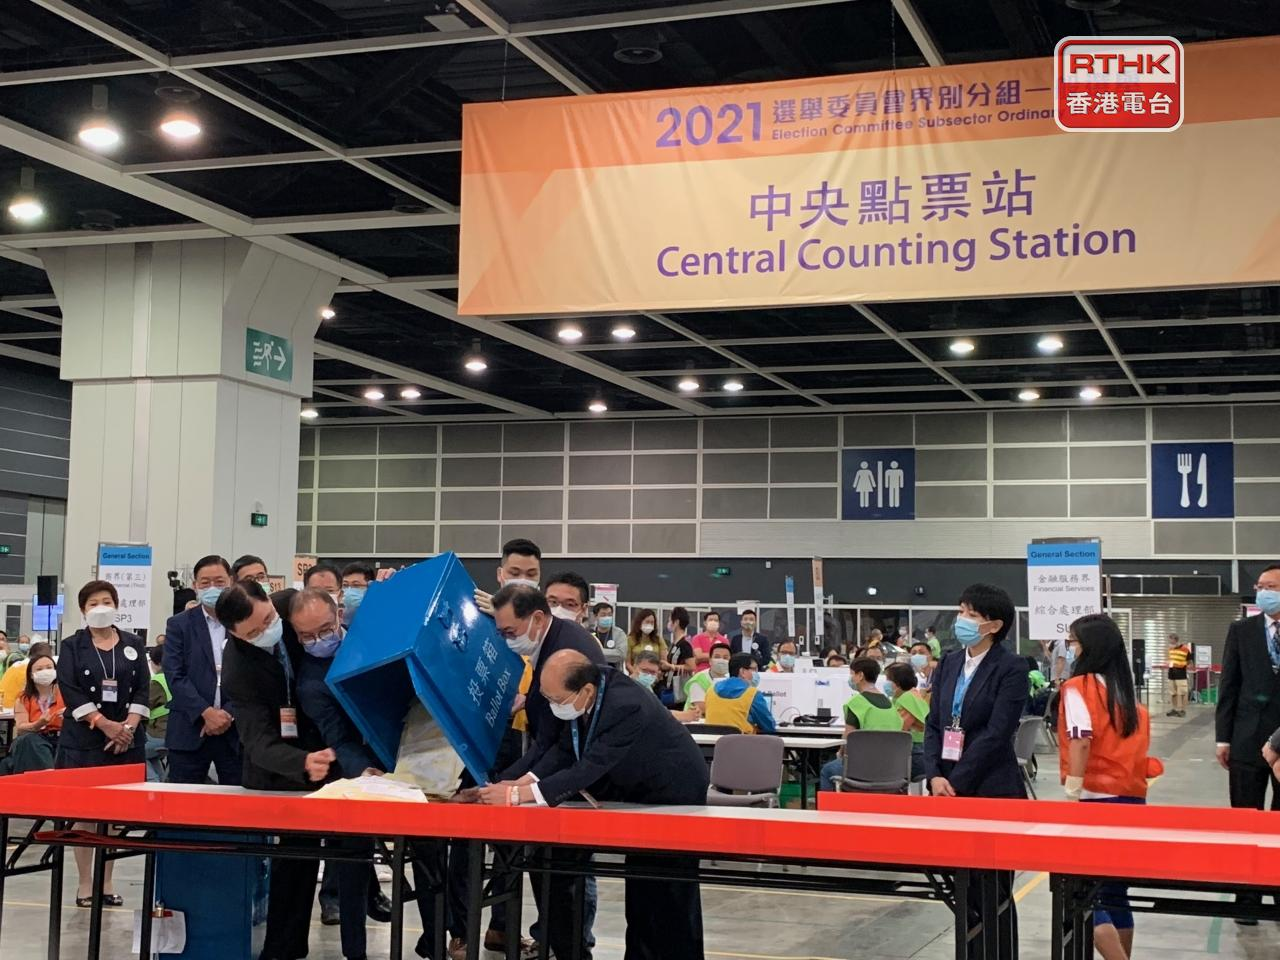 More than 4,300 people have voted in the Election Committee poll, representing a turnout of about 90 percent. Photo: RTHK